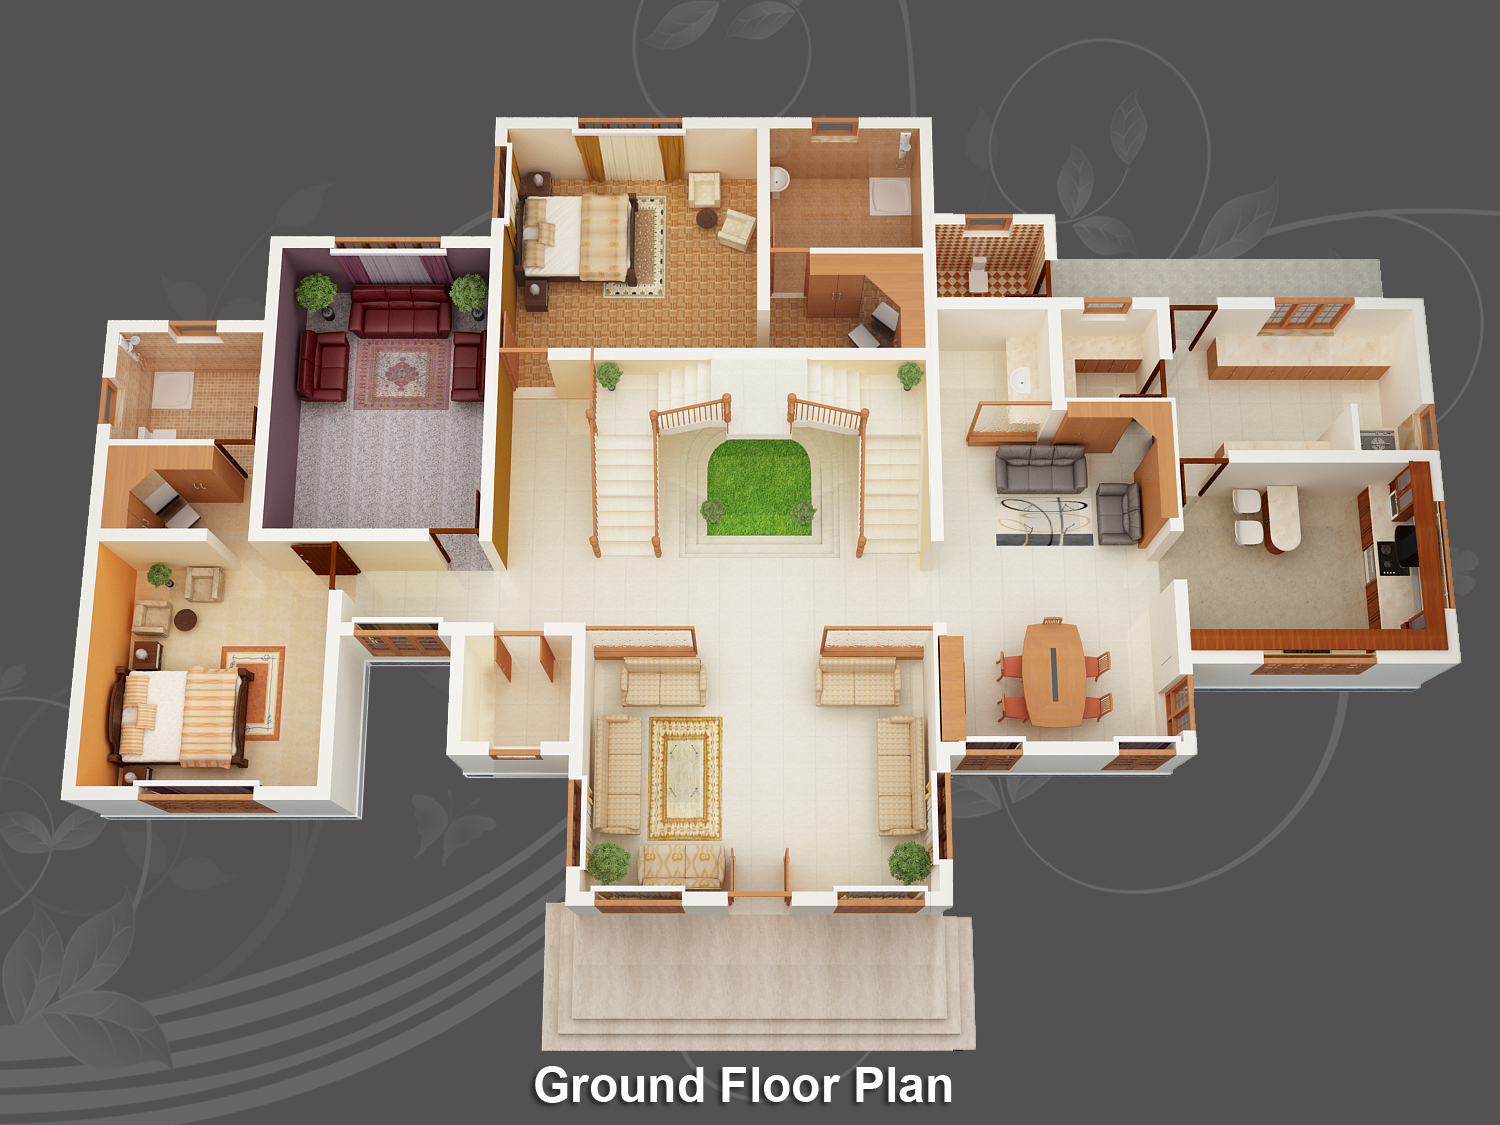 Evens construction pvt ltd 3d house plan 20 05 2011 for Home plan 3d